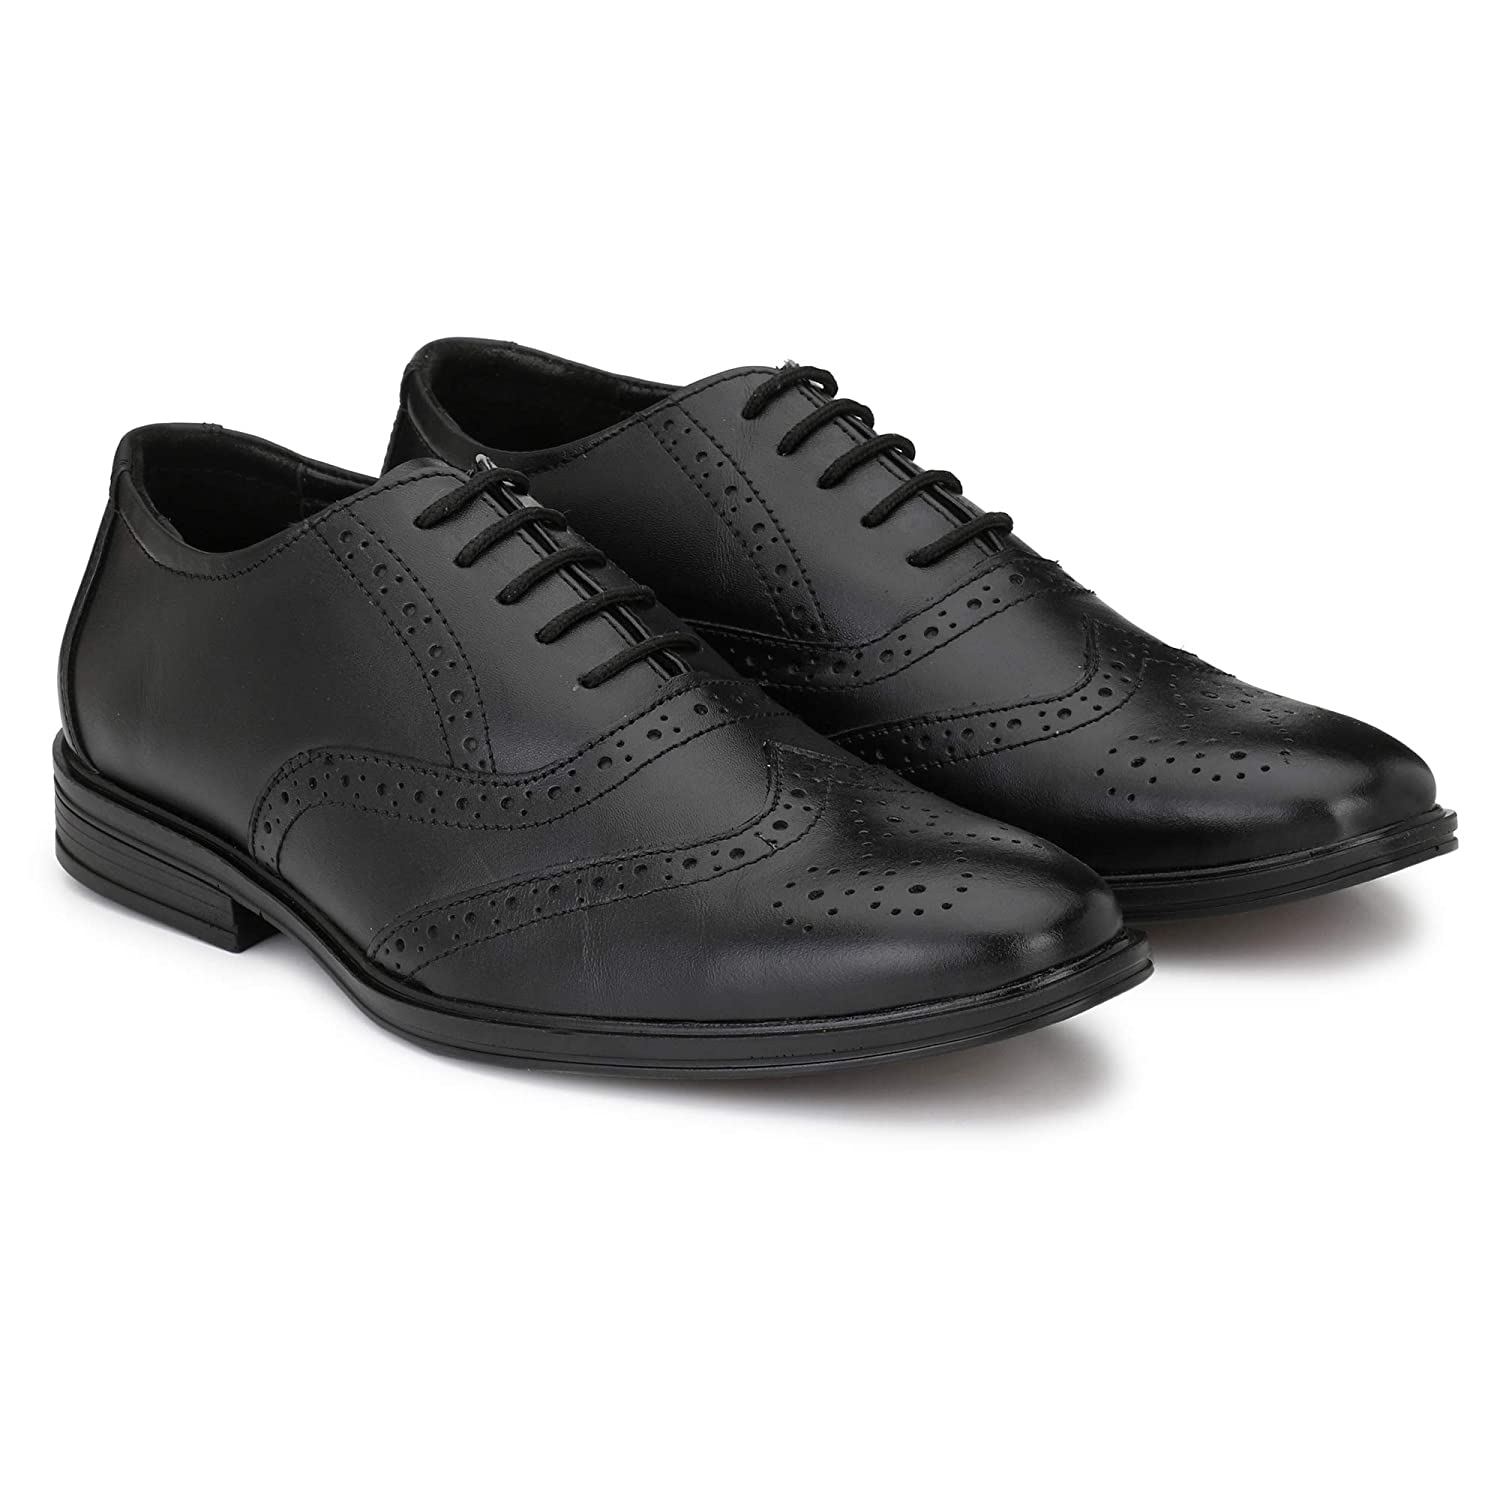 8400fbfa101 Nova Shoes Mens Genuine Leather Formal Business Wingtip Brogue Oxford Shoes   Buy Online at Low Prices in India - Amazon.in